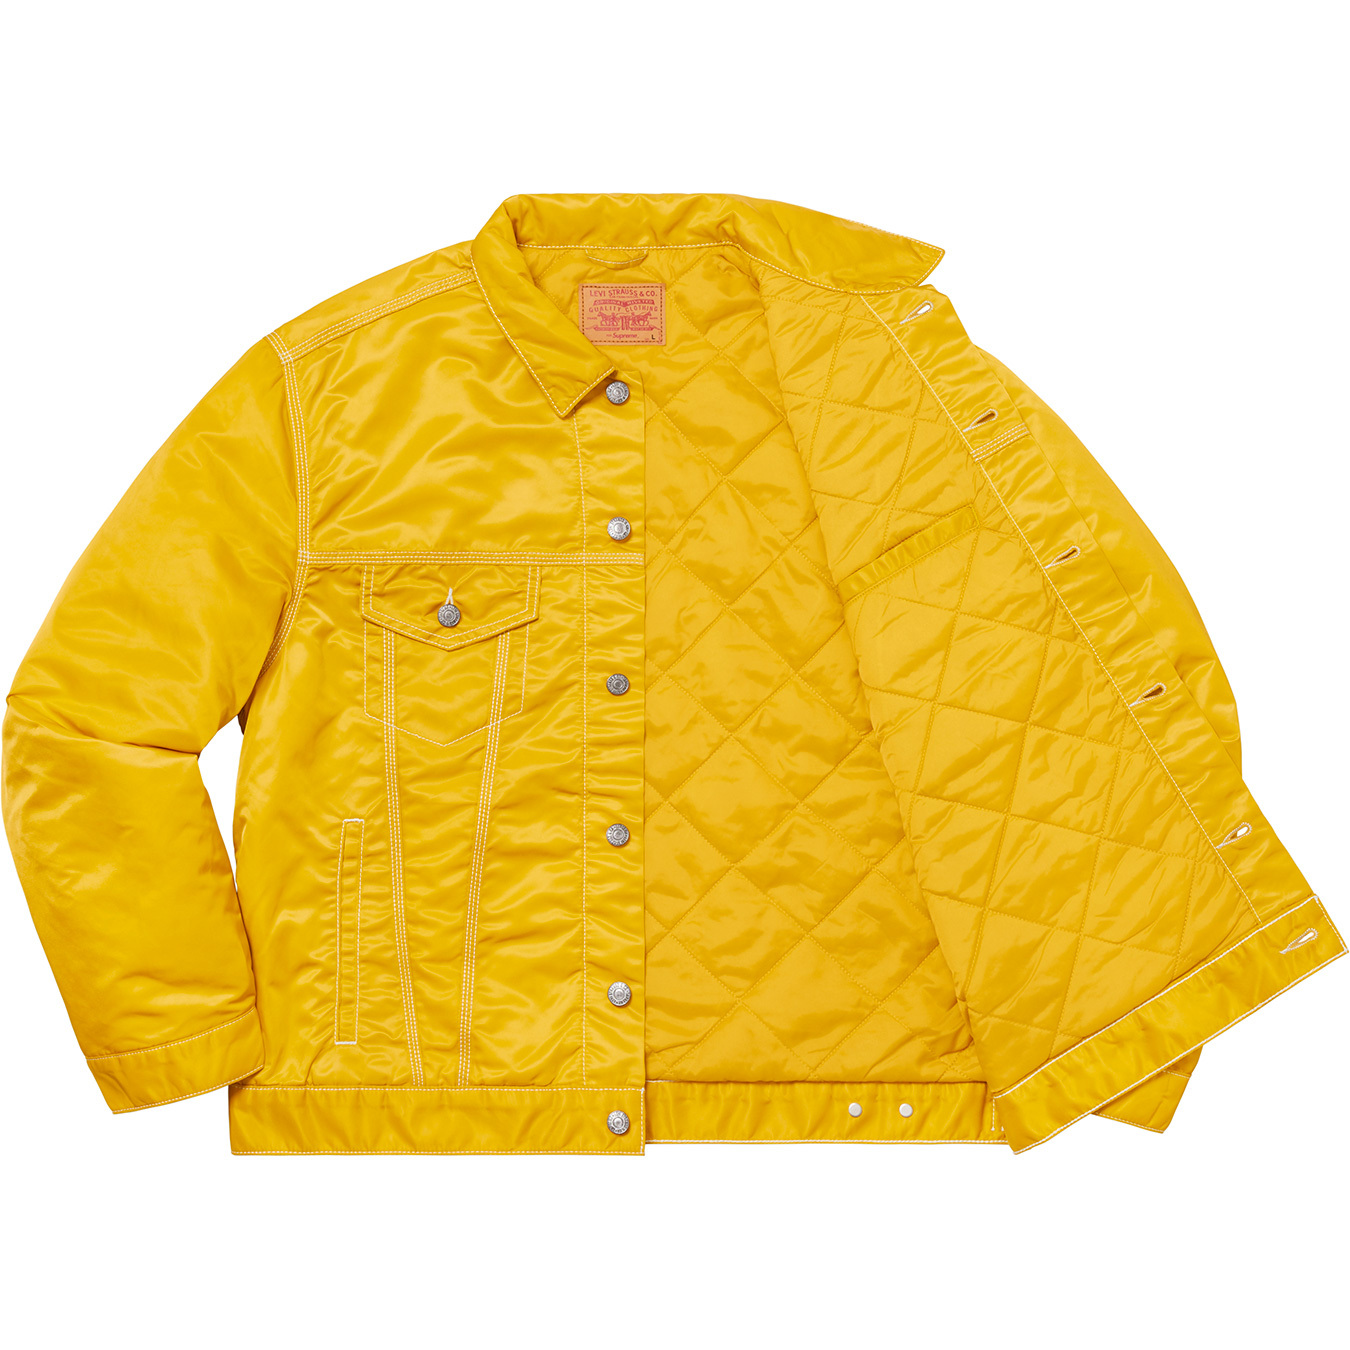 supreme-levis-19aw-19fw-collaboration-release-20191026-week9-nylon-trucker-jacket